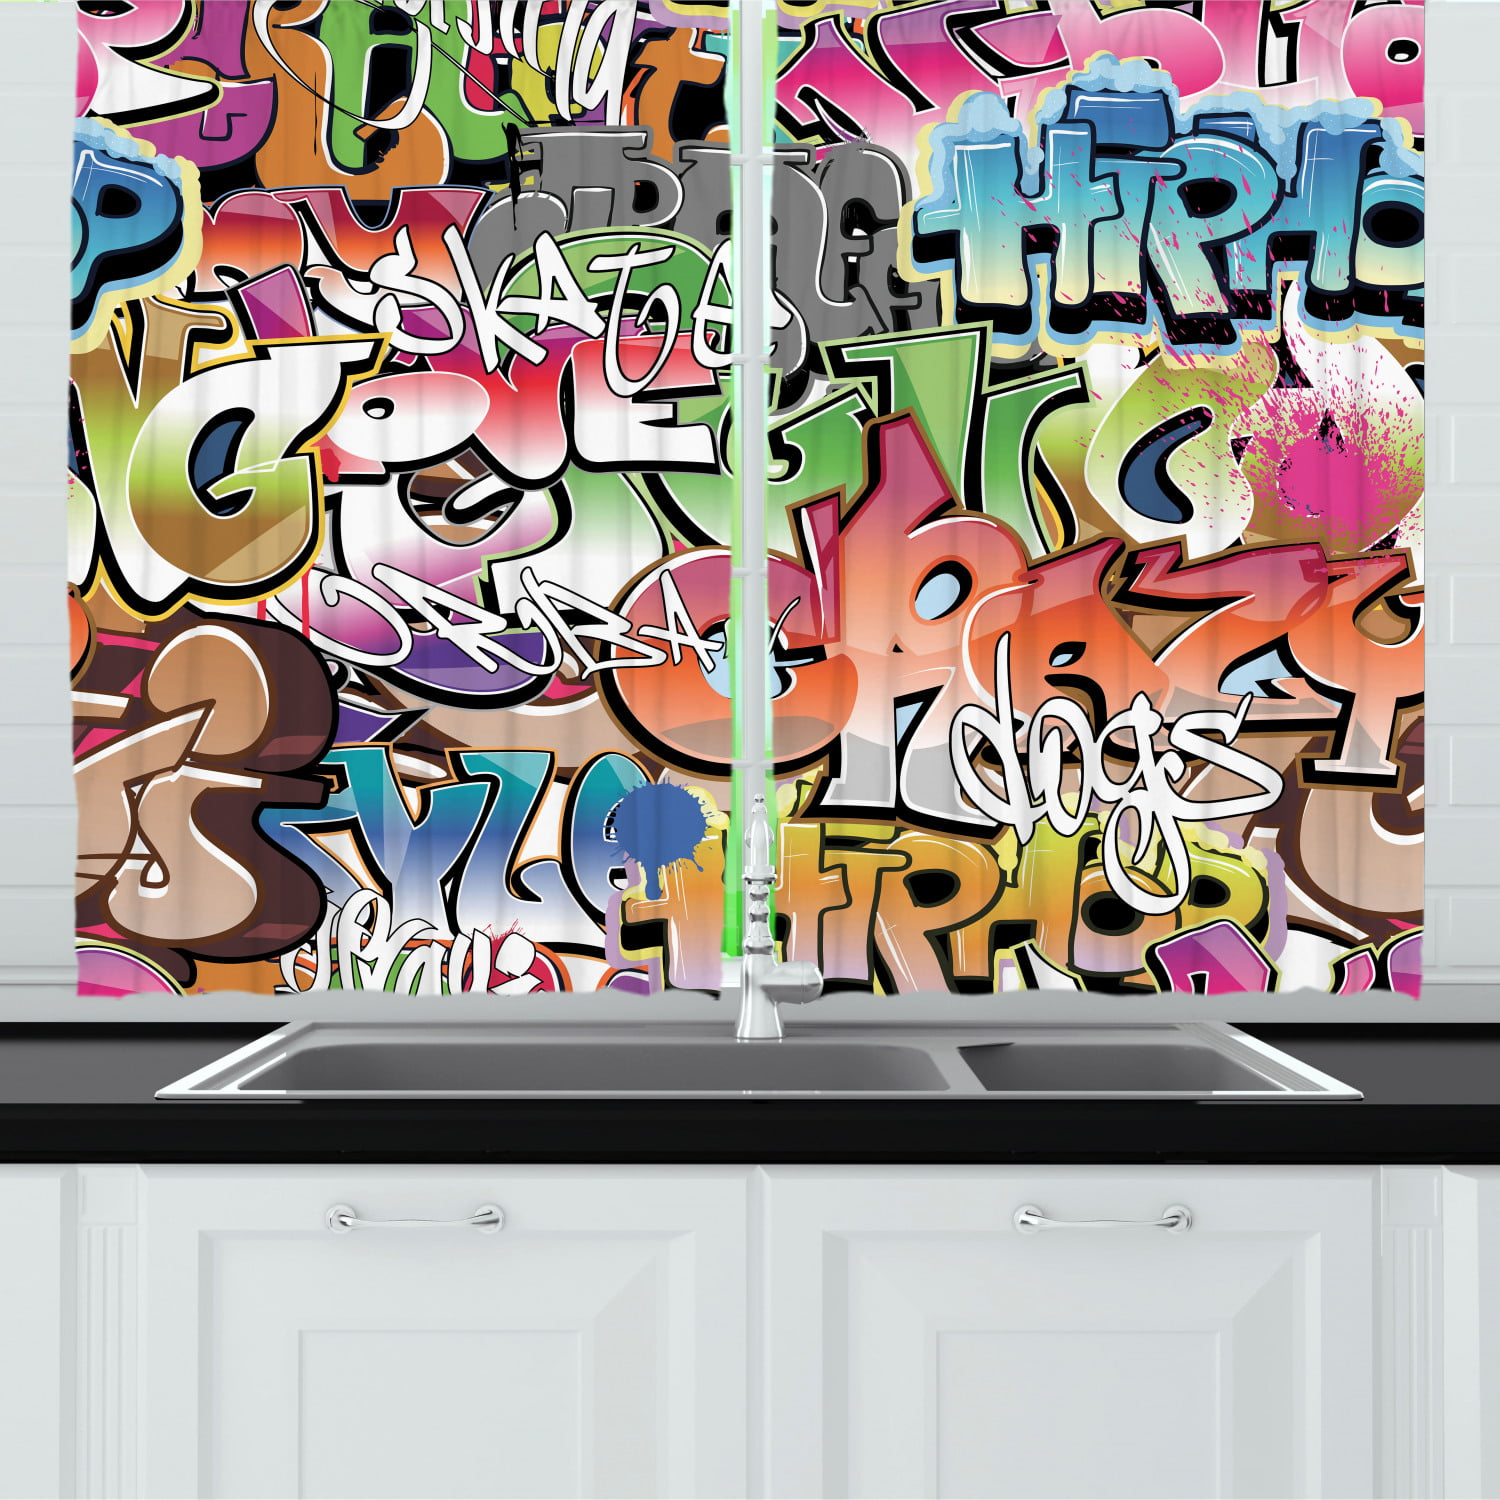 Urban Graffiti Curtains 2 Panels Set Blockbuster Style Graffiti Sprayed Overlapping Blocky Letters Street Art Window Drapes For Living Room Bedroom 55w X 39l Inches Multicolor By Ambesonne Walmart Com Walmart Com